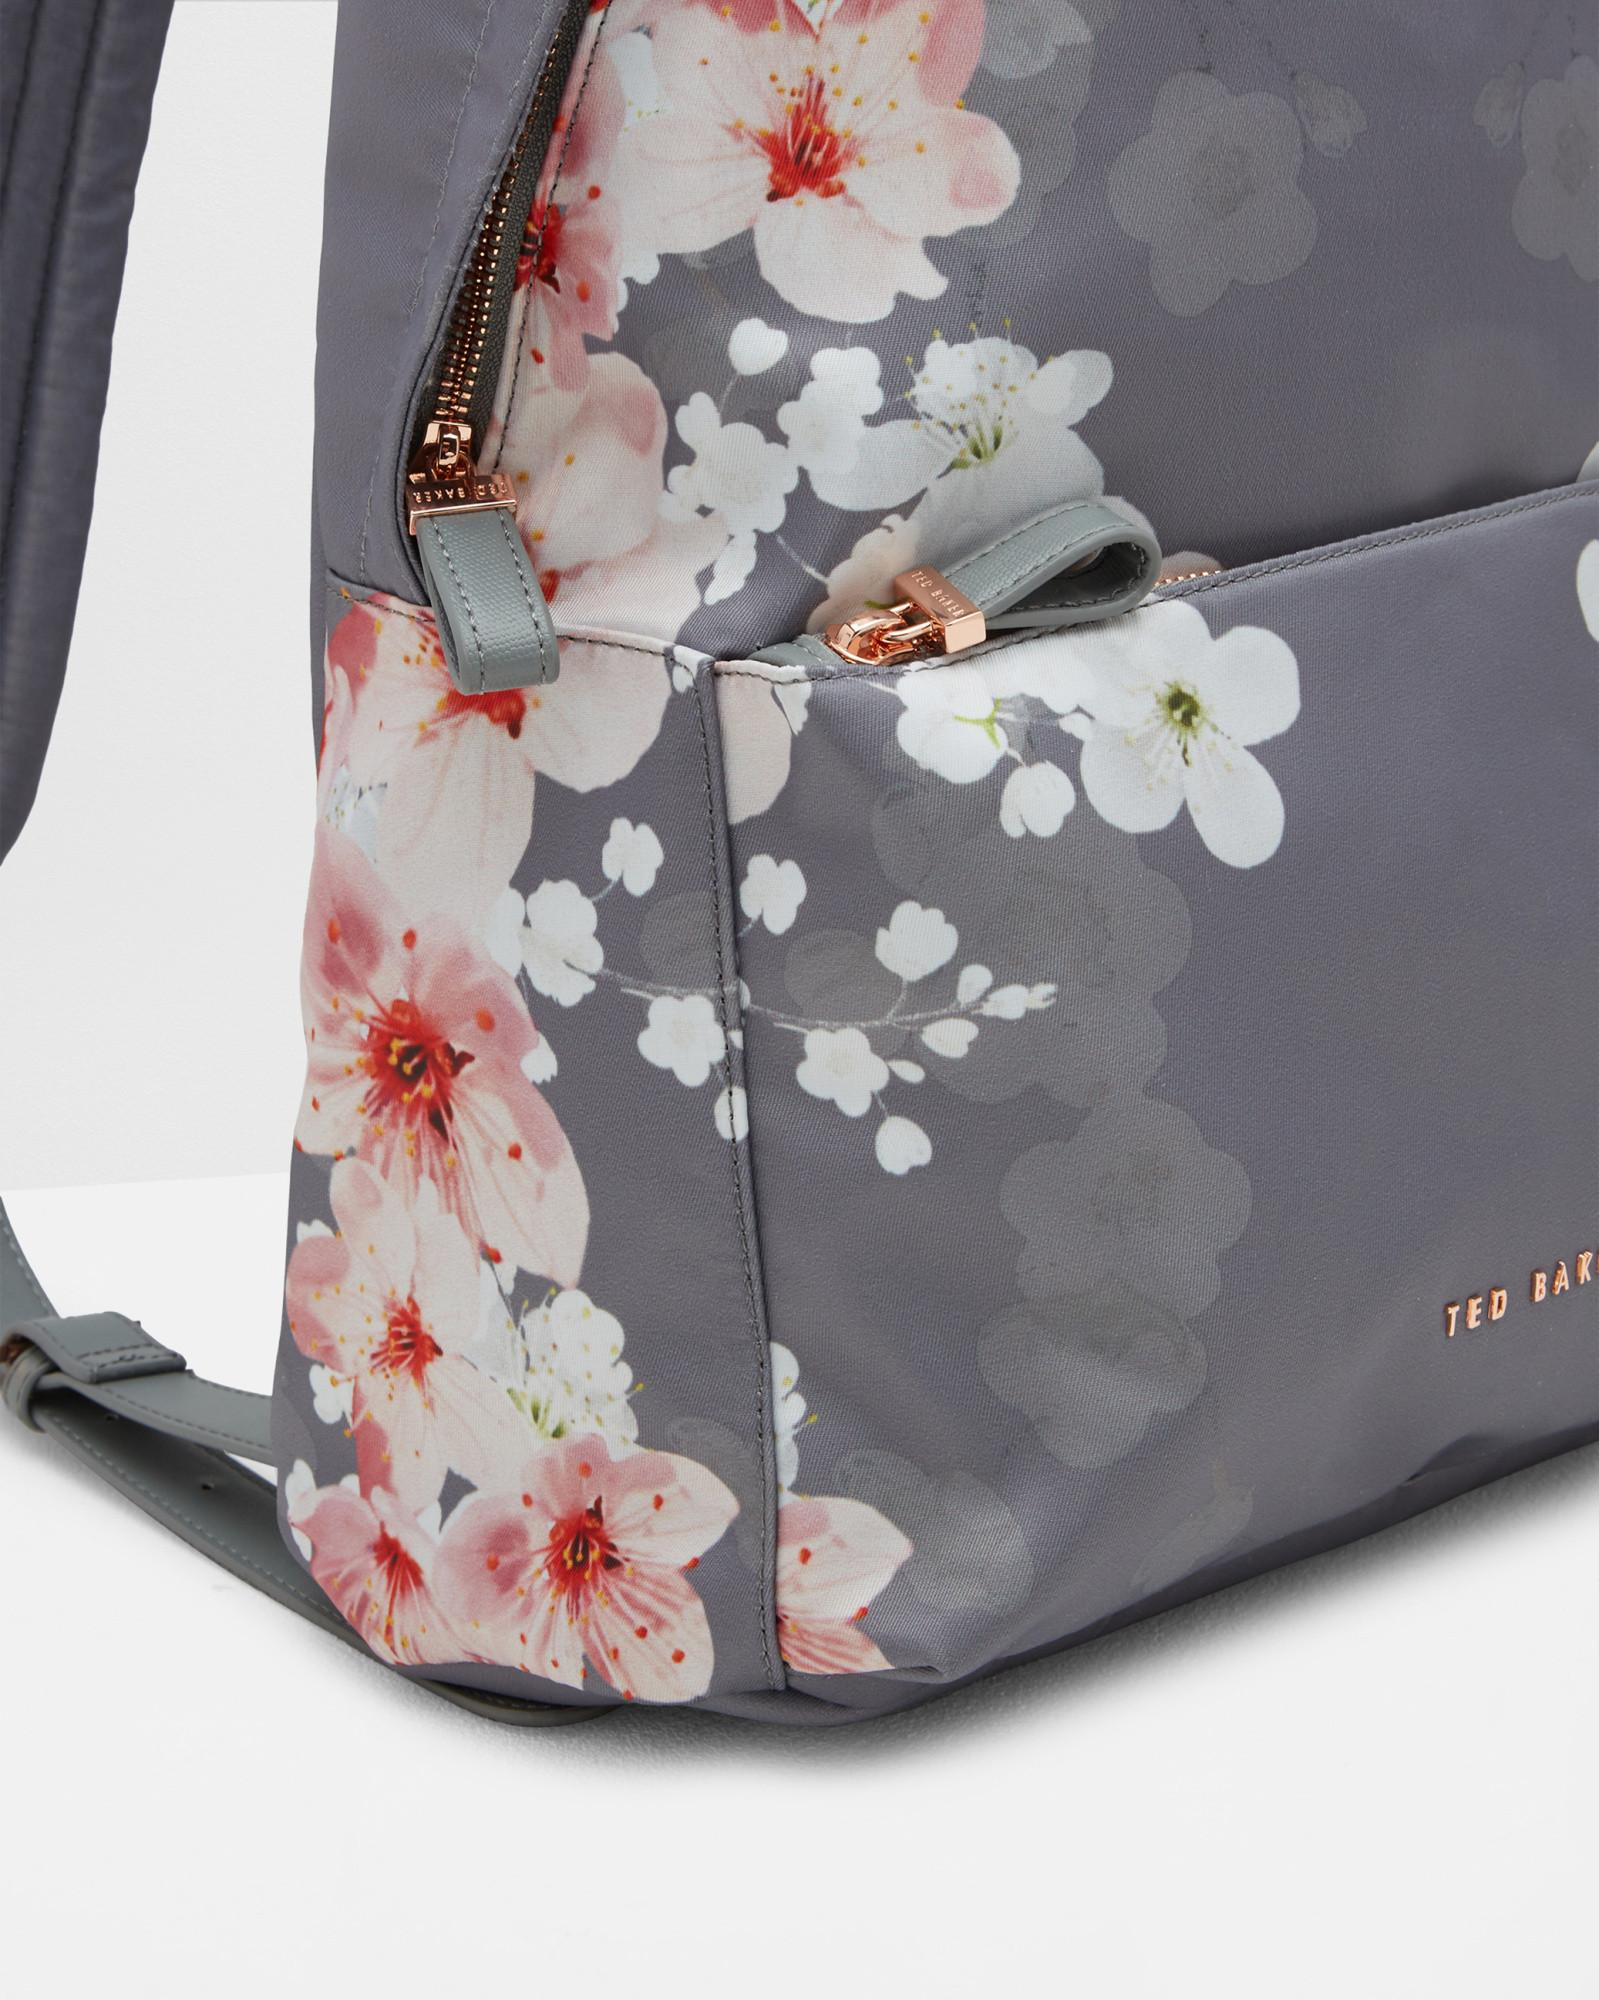 09d3d43d0 Lyst - Ted Baker Oriental Blossom Backpack in Gray